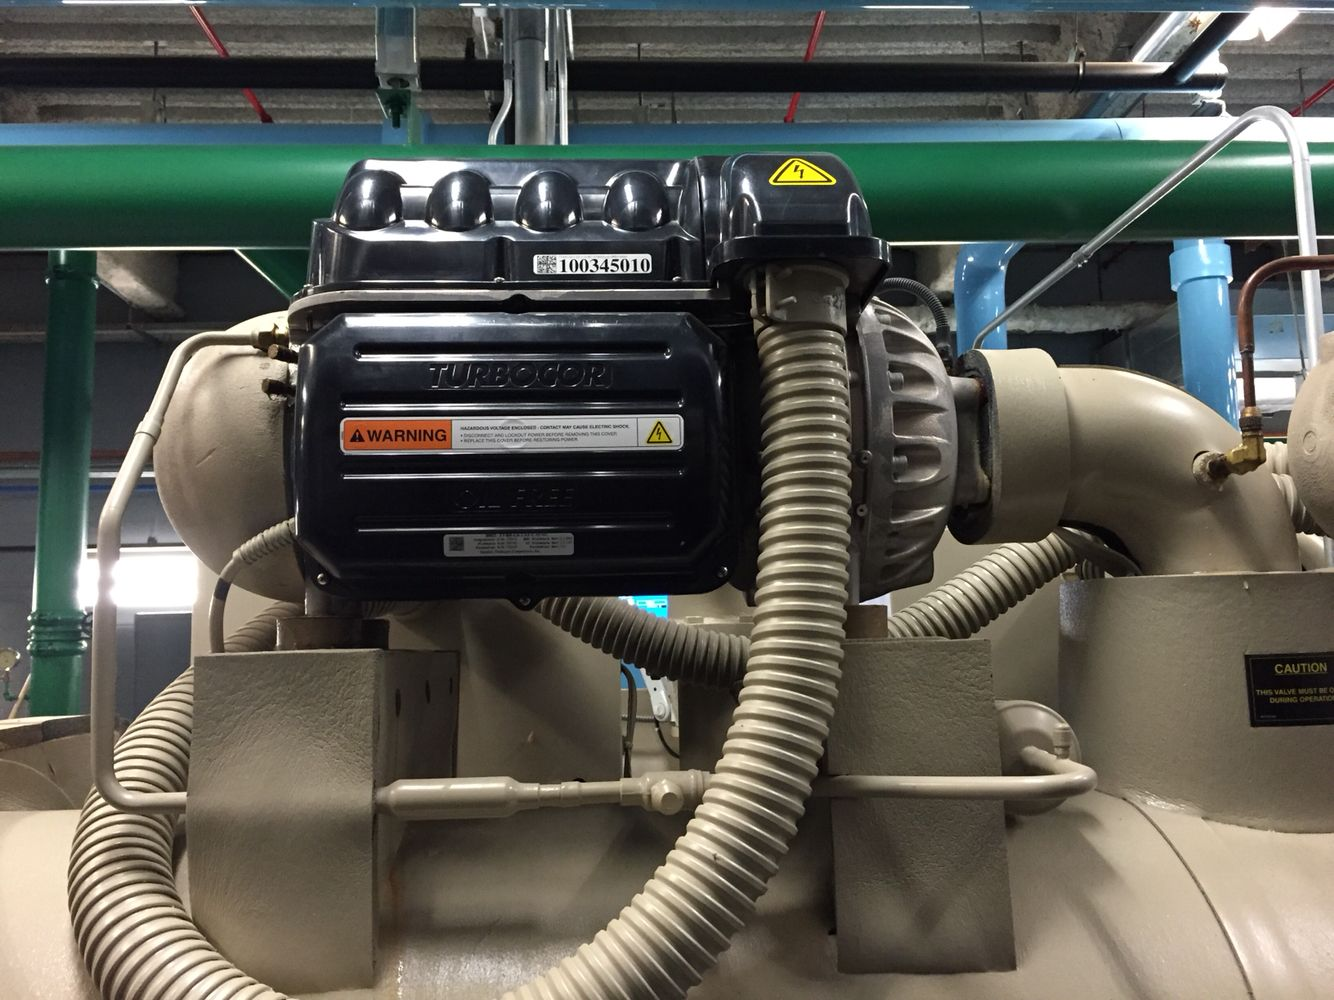 8 best centrifugal chillers images on pinterest conditioning cute turbo core on daikin chiller cheapraybanclubmaster Choice Image